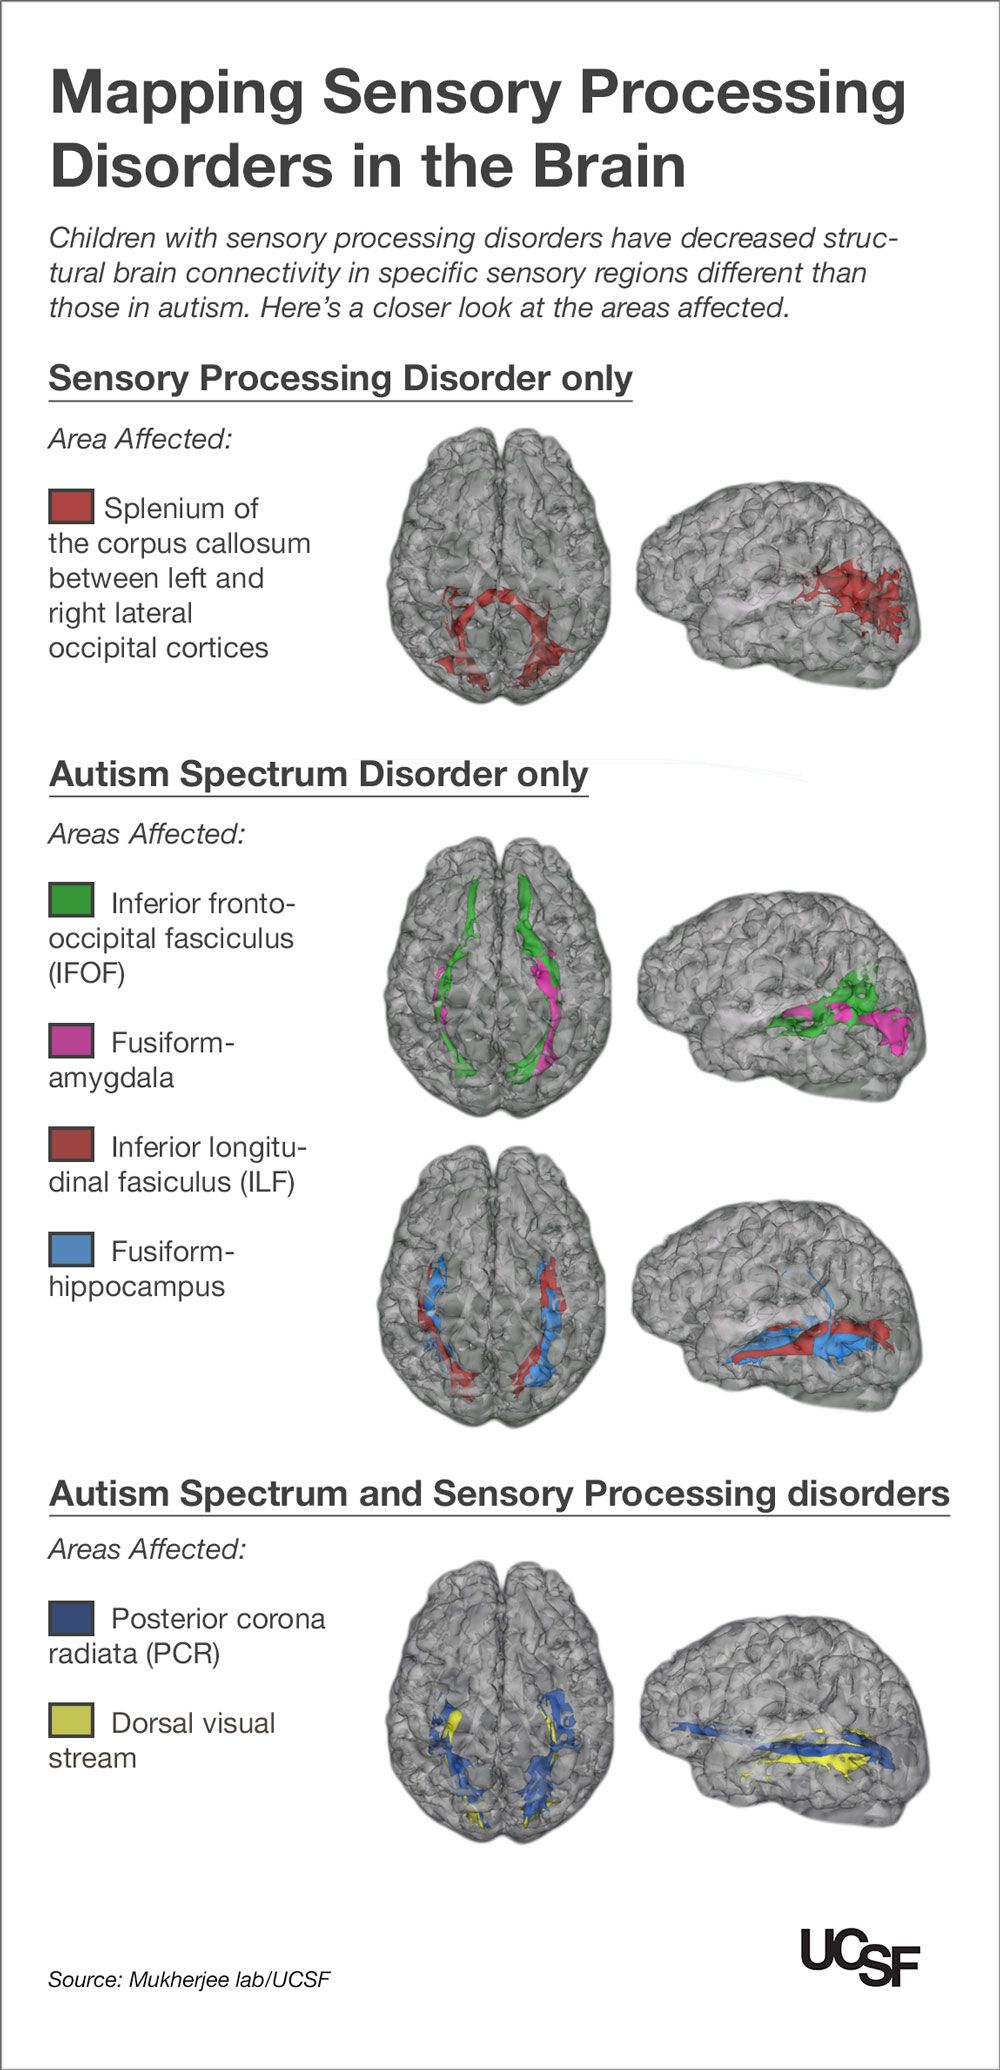 Brains Of People With Autism Spectrum >> Kids With Autism Sensory Processing Disorders Show Brain Wiring